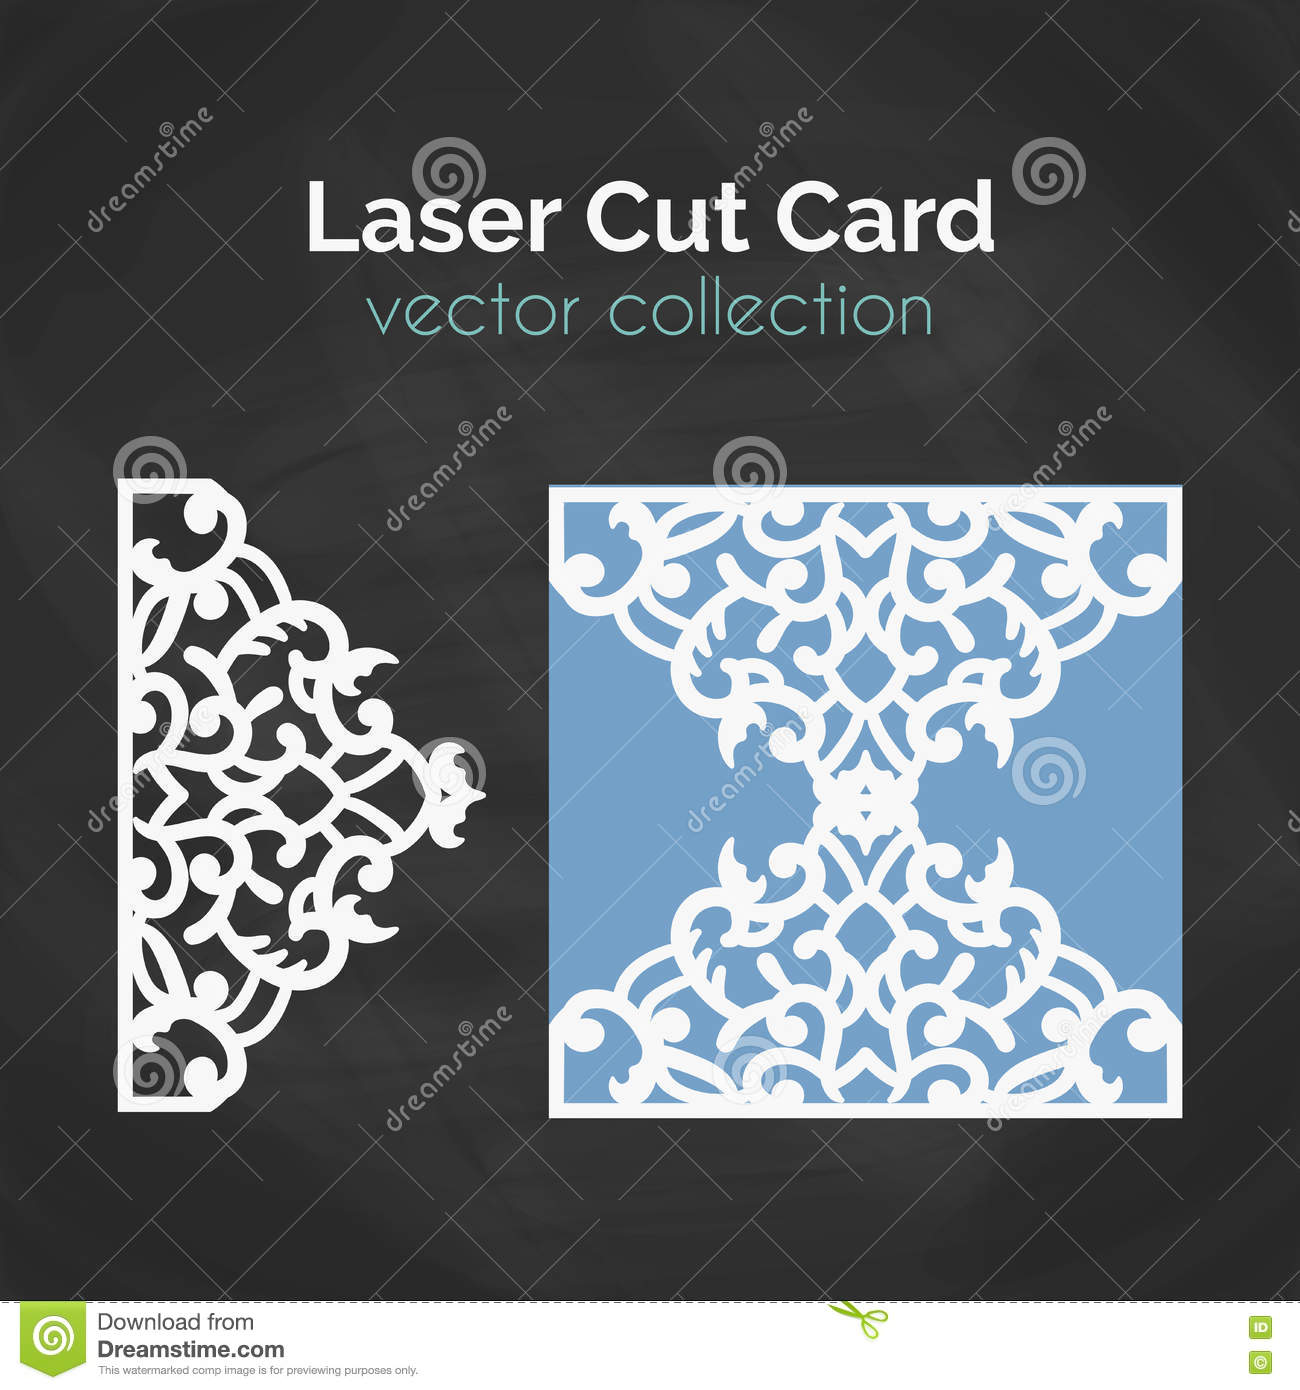 Laser Cut Card Template For Cutting Cutout Illustration With Abstract Decoration Die Wedding Invitation Vector Envelope Design: Cut Out Wedding Invitation Card Templates At Websimilar.org